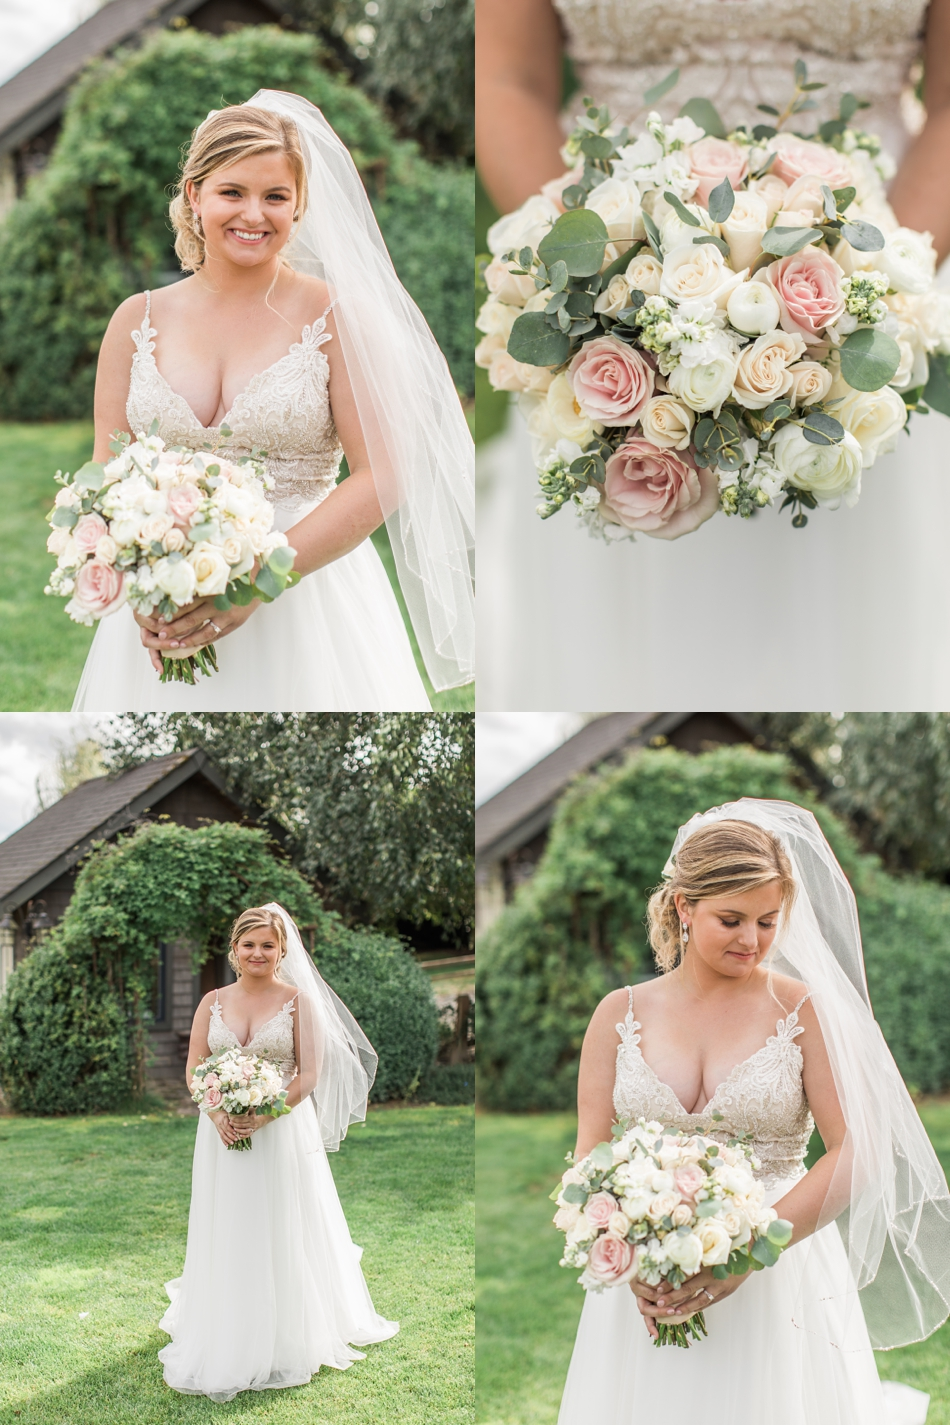 Photo of bride in dress with bouquet at a Hidden Meadows Farms wedding in Snohomish, a rustic yet elegant wedding venue near Seattle. | Joanna Monger Photography